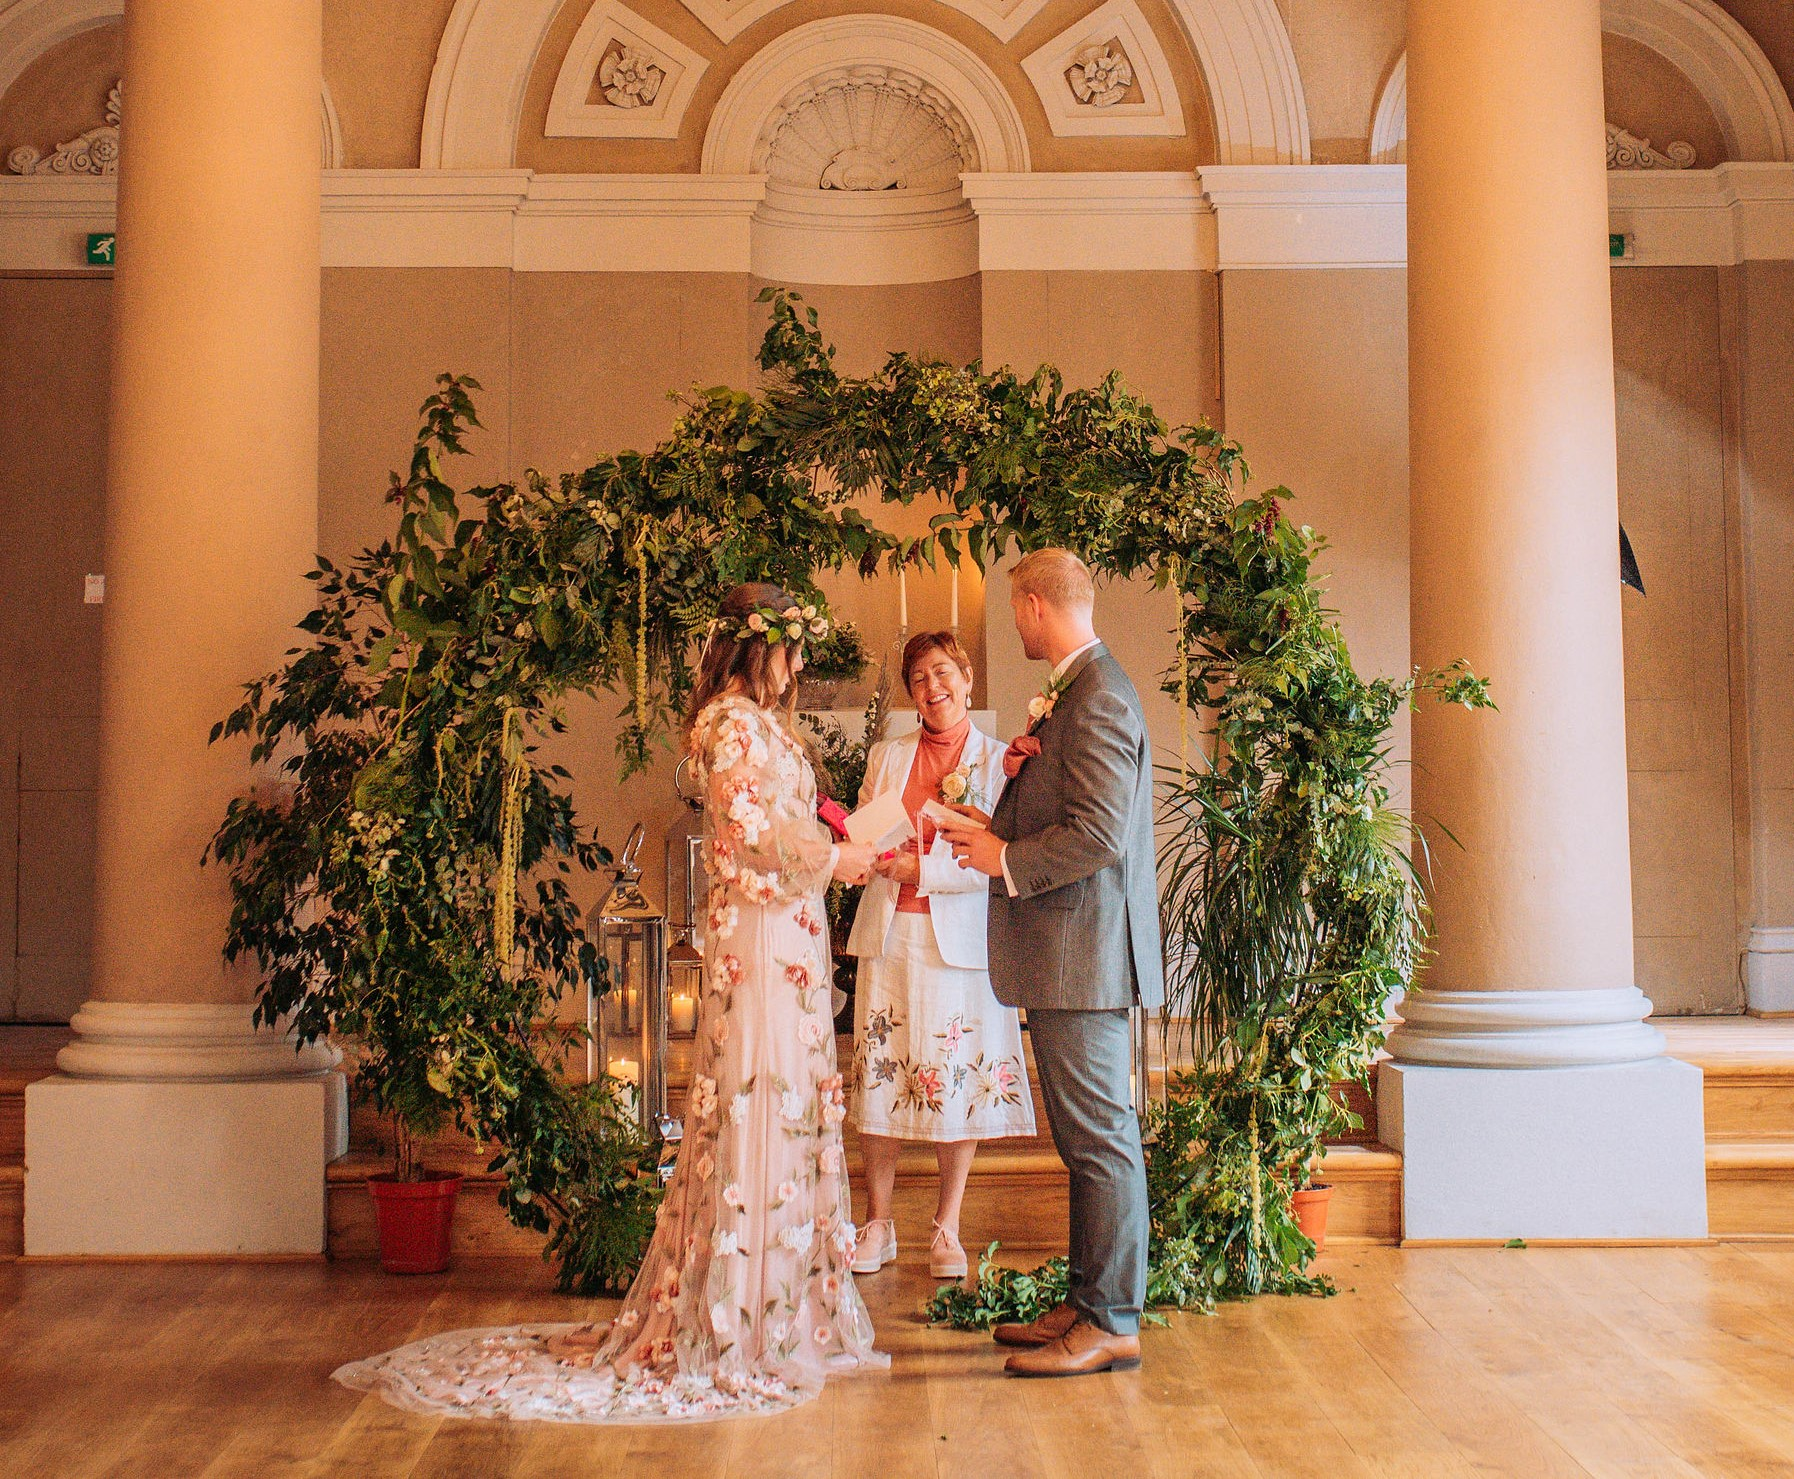 Bride and Groom exchanging their Wedding Vows. With Wedding Officiant and a Ceremony area dressed in greenery